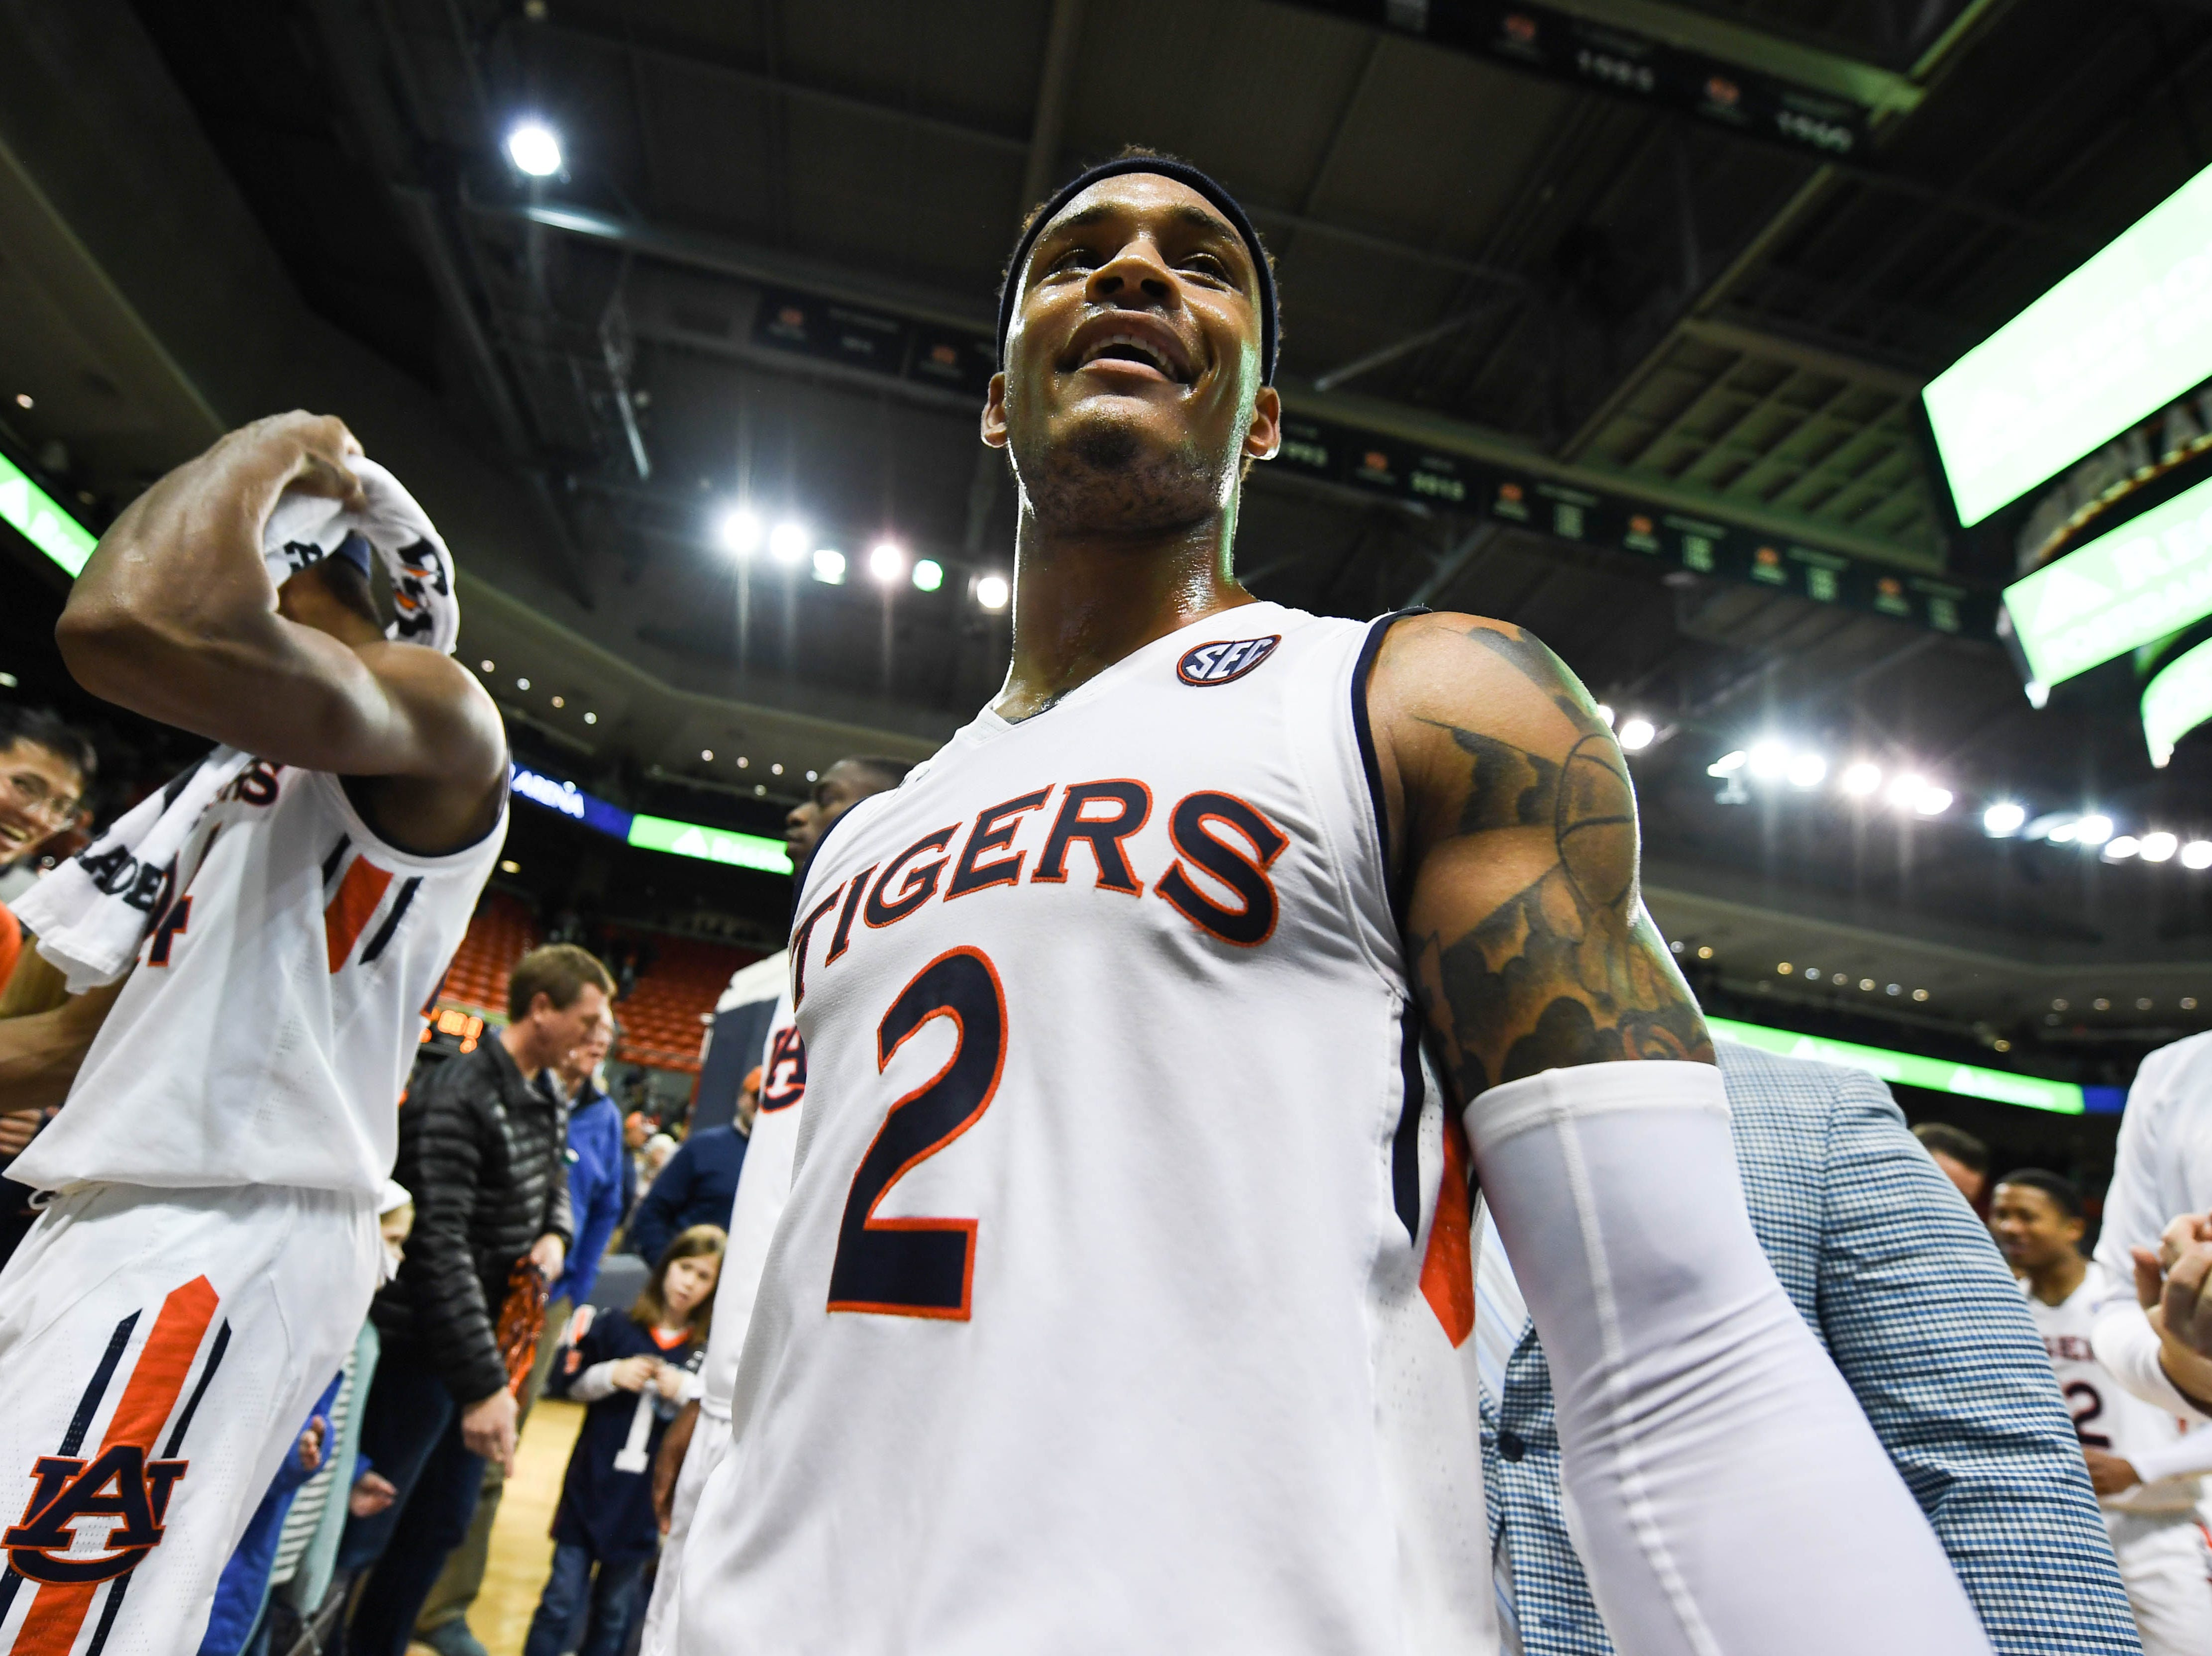 Dec 22, 2018; Auburn, AL, USA; Auburn Tigers guard Bryce Brown (2) walks off the court after the win over the Murray State Racers at Auburn Arena. Mandatory Credit: Shanna Lockwood-USA TODAY Sports